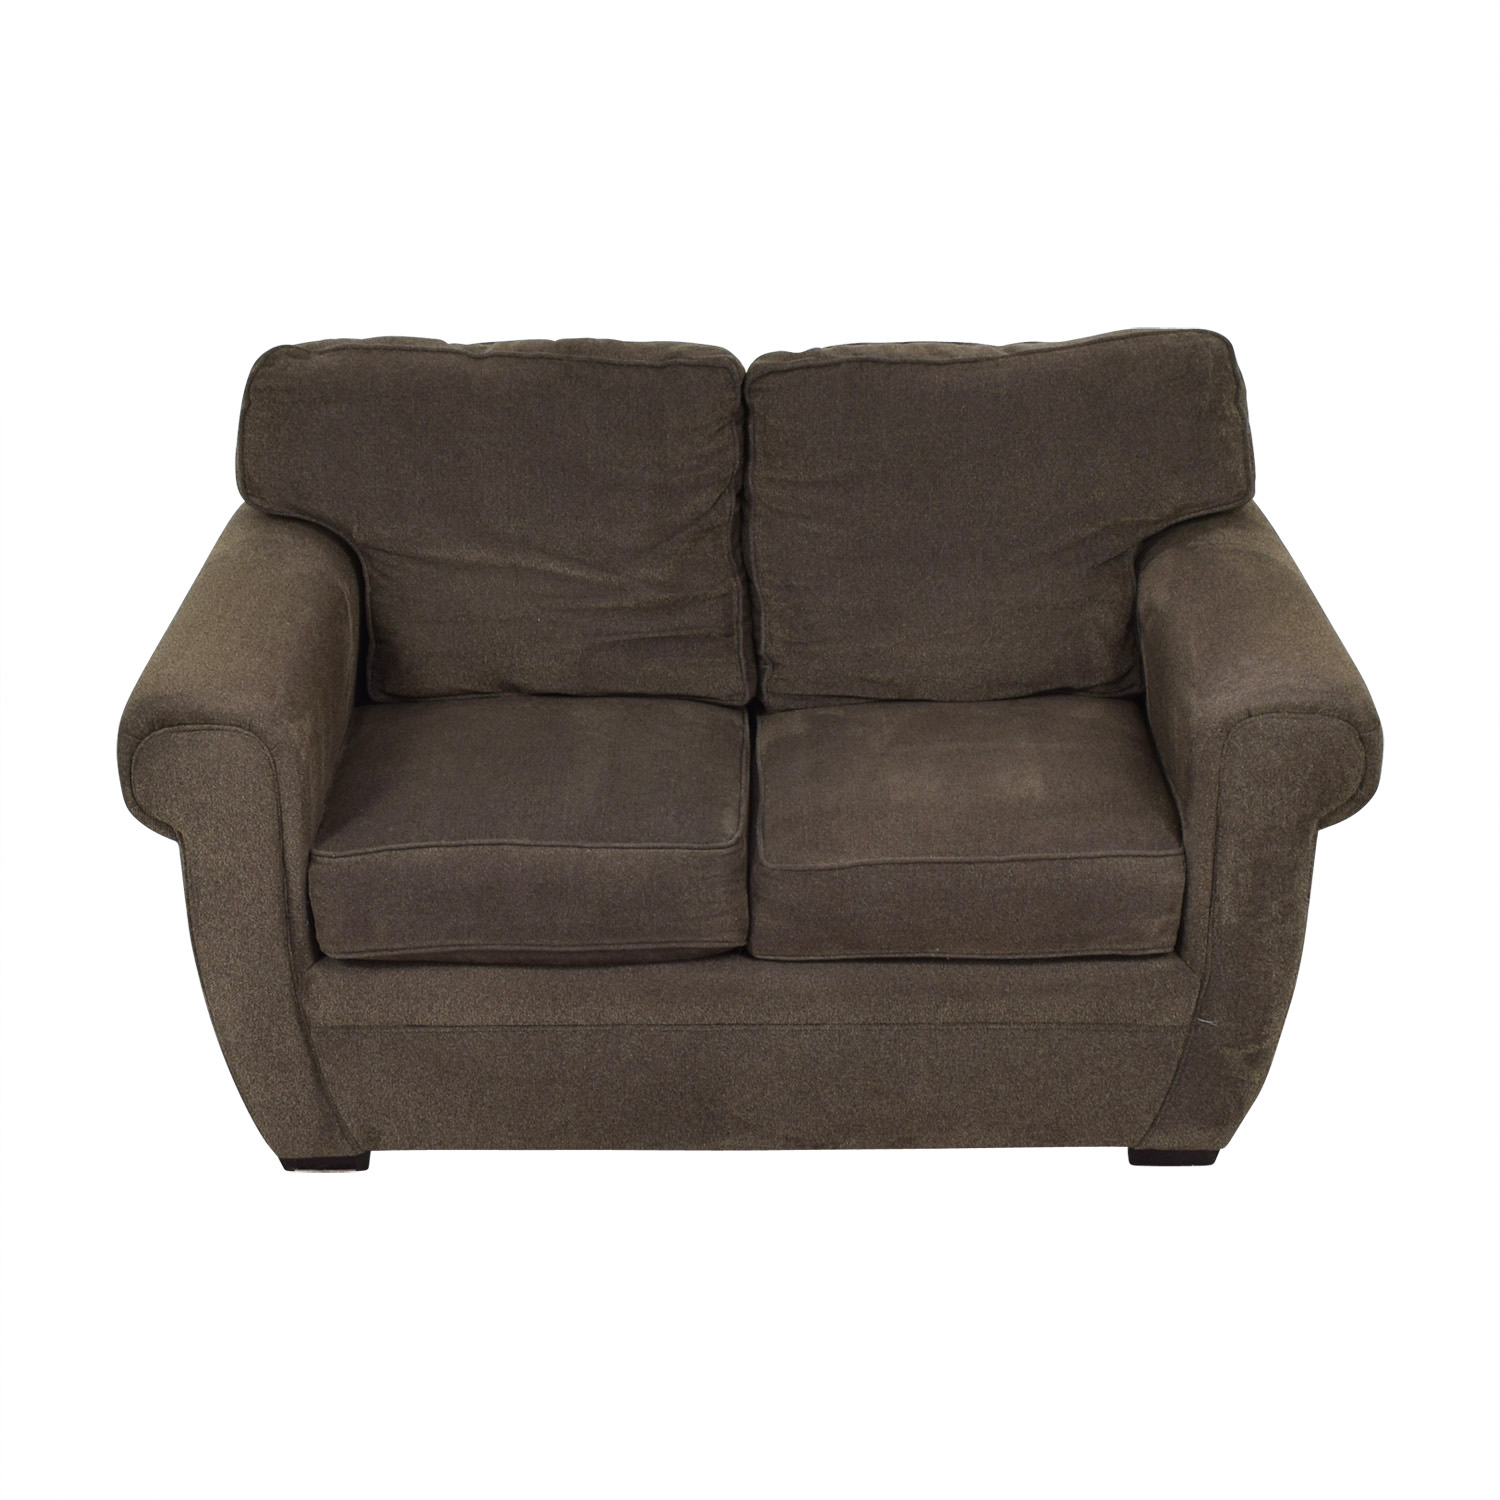 Broyhill Broyhill Brown Loveseat Loveseats